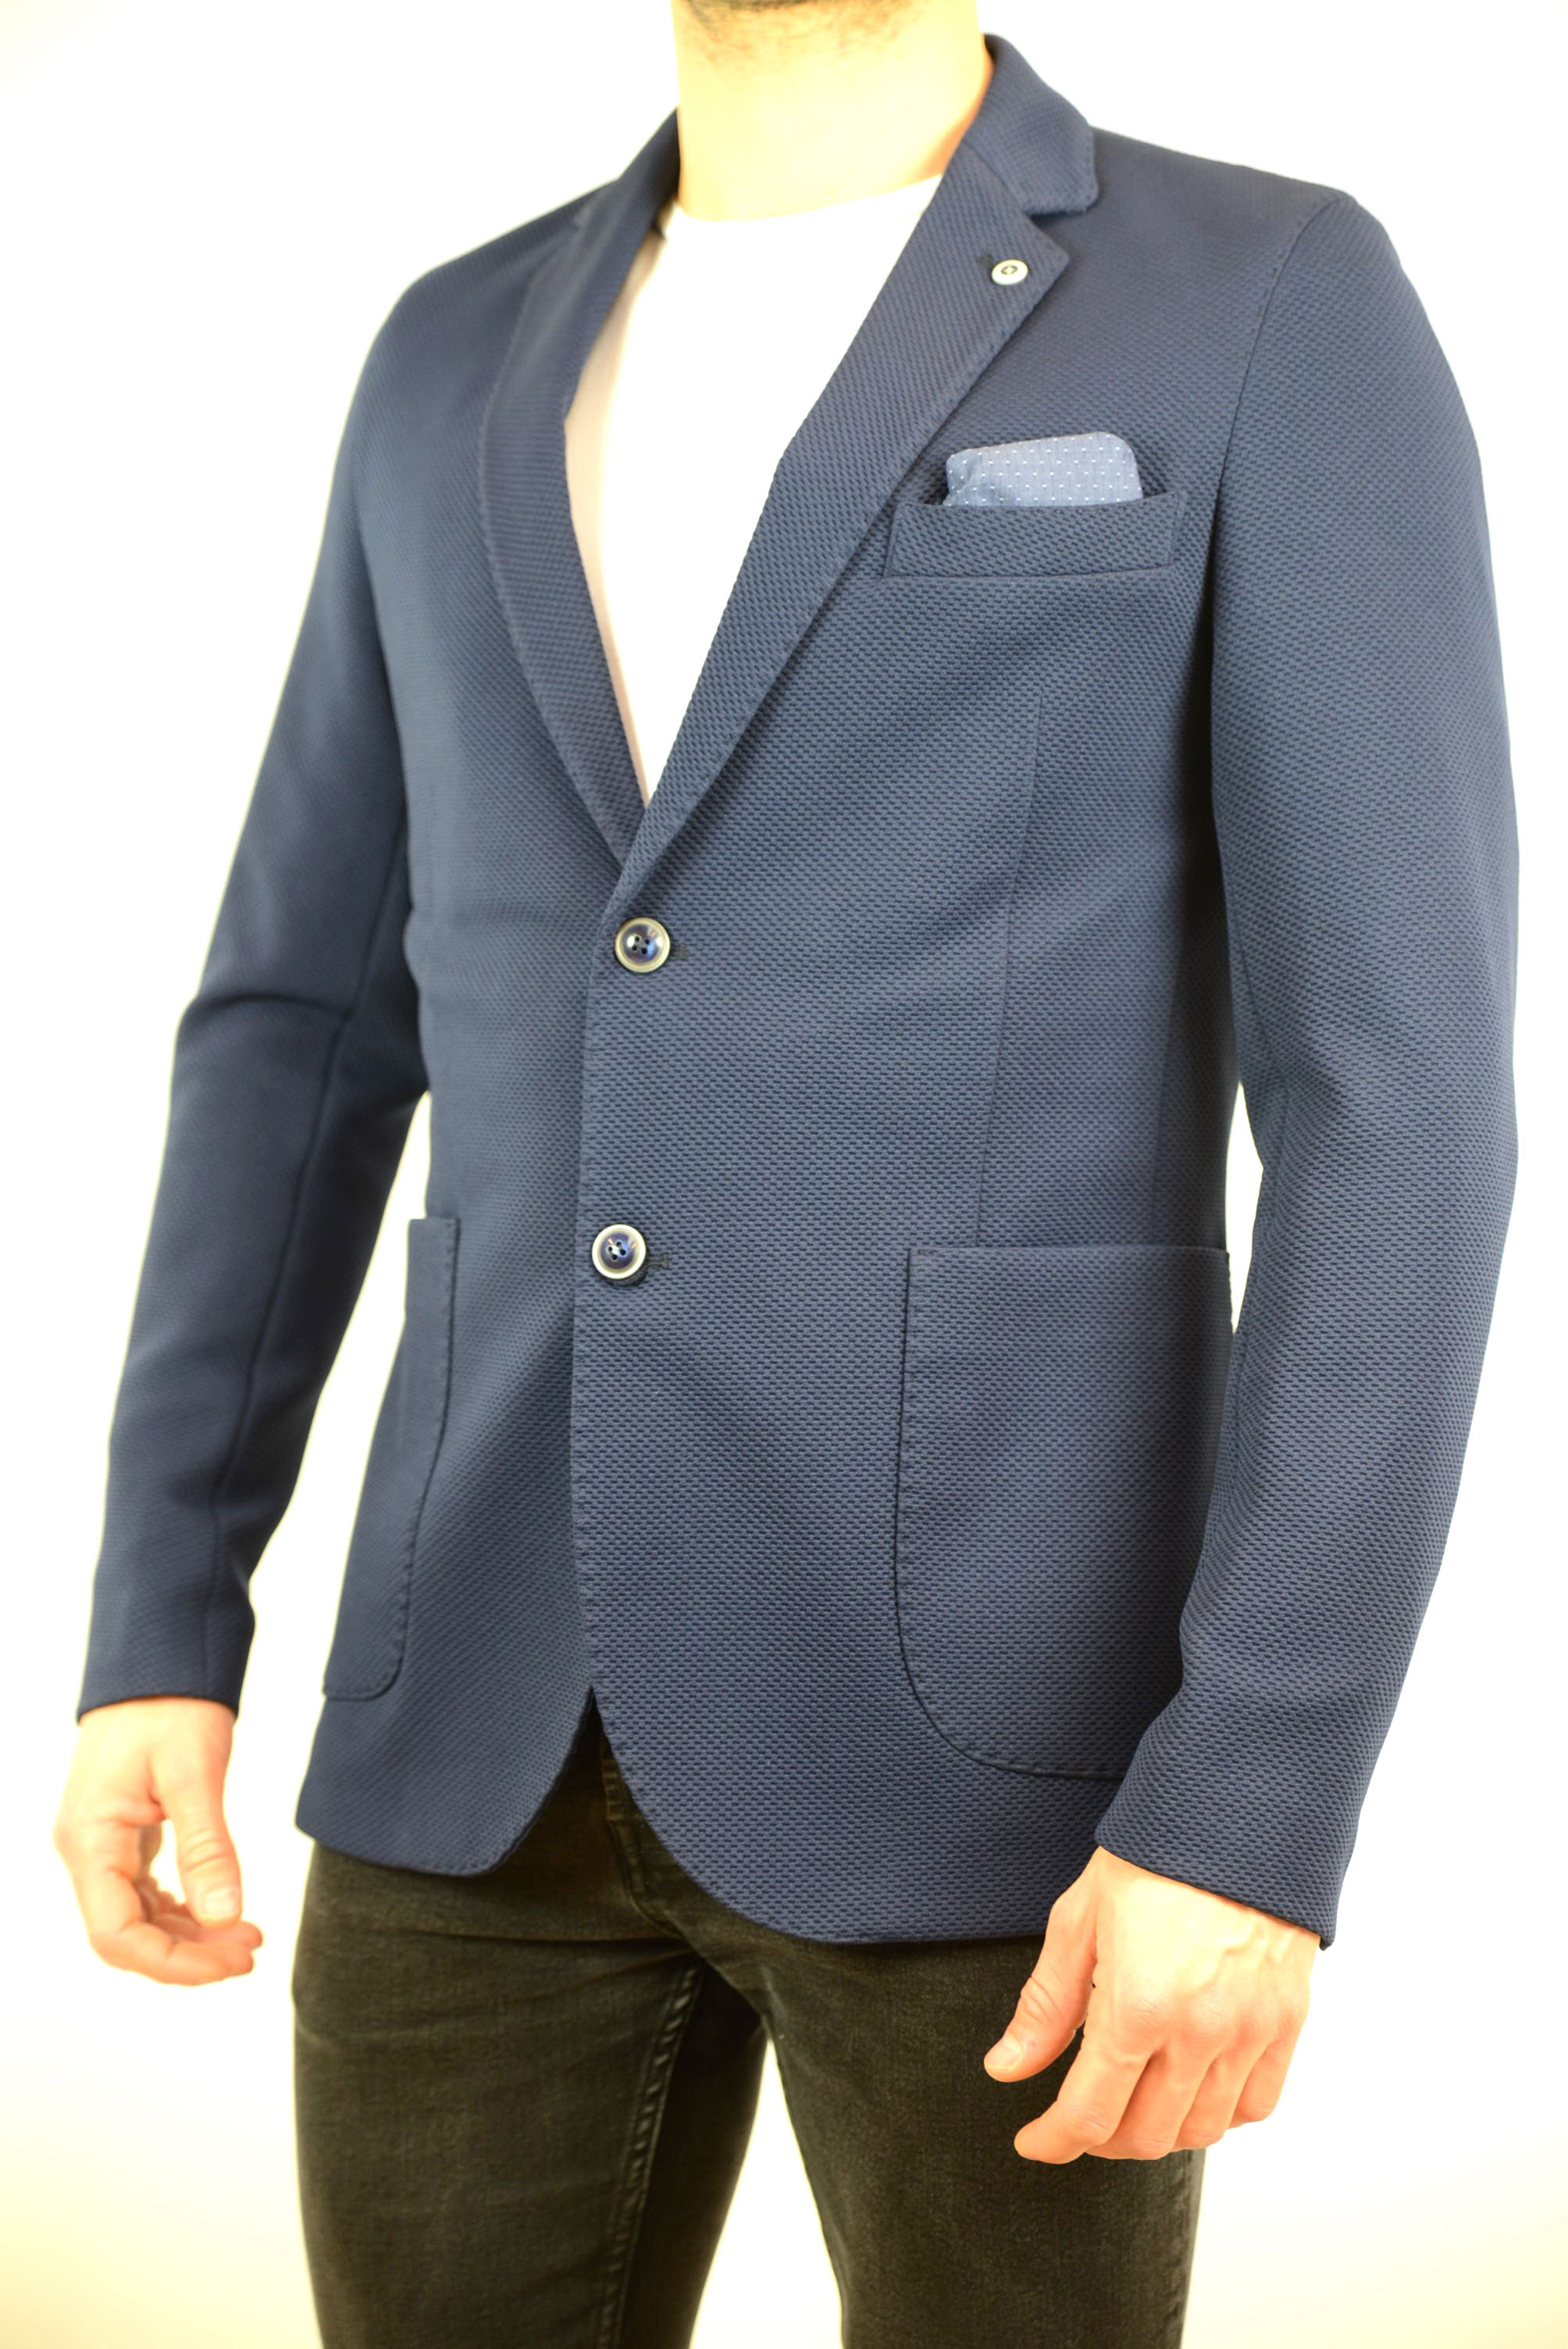 outlet store 0f286 aa7be Giacca elegante uomo